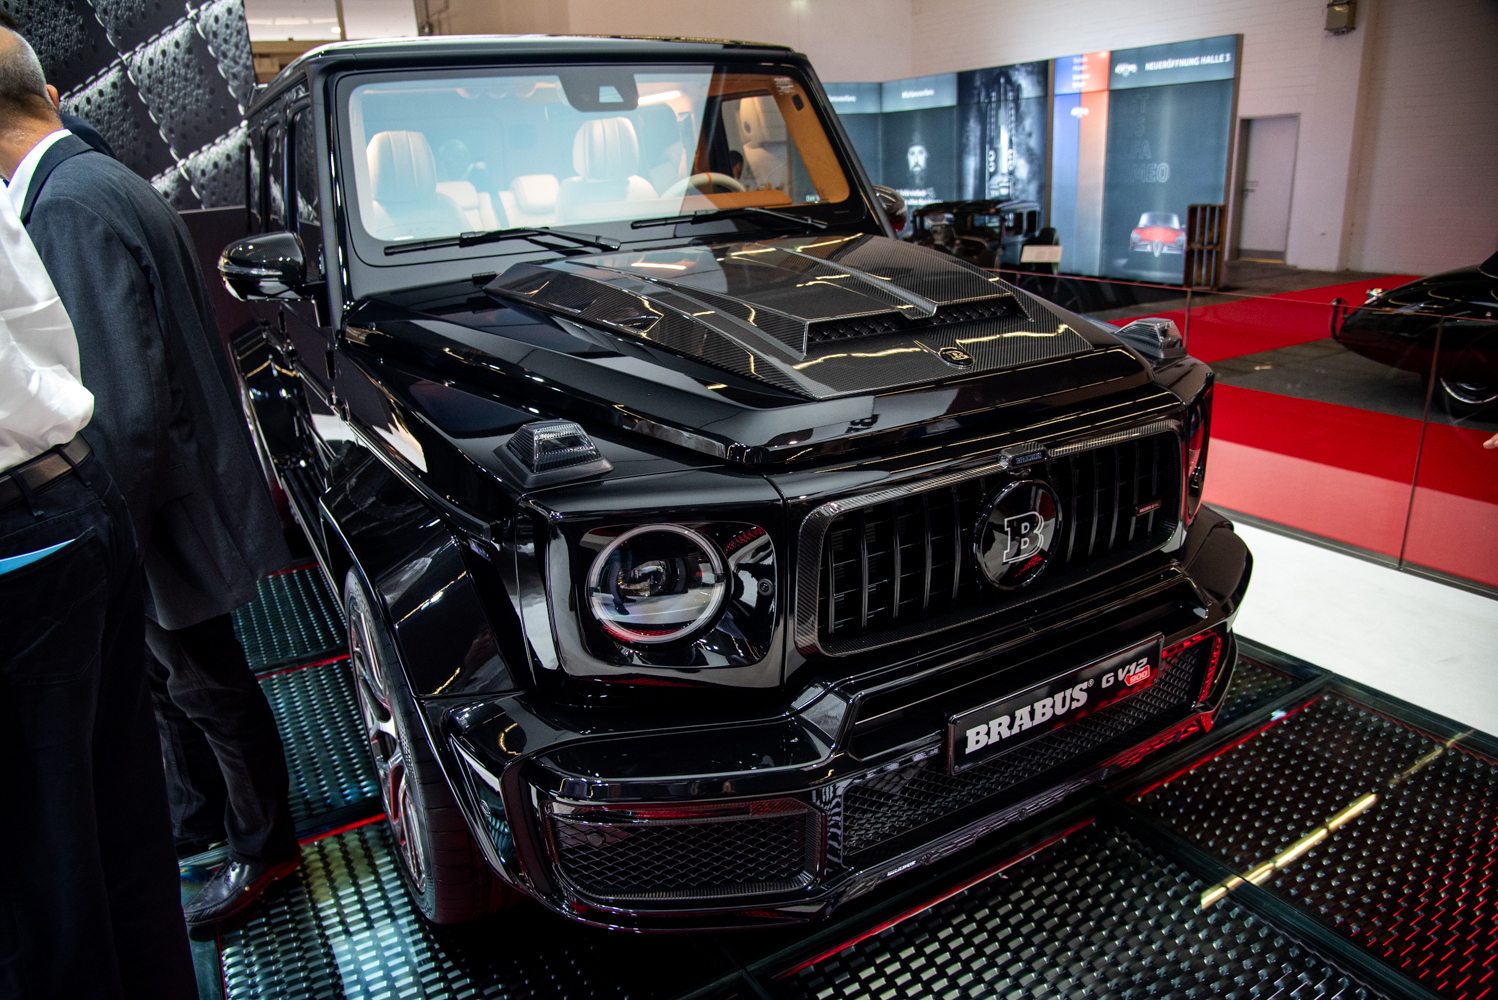 IAA 2019: Brabus G 900 V12 'One of Ten'